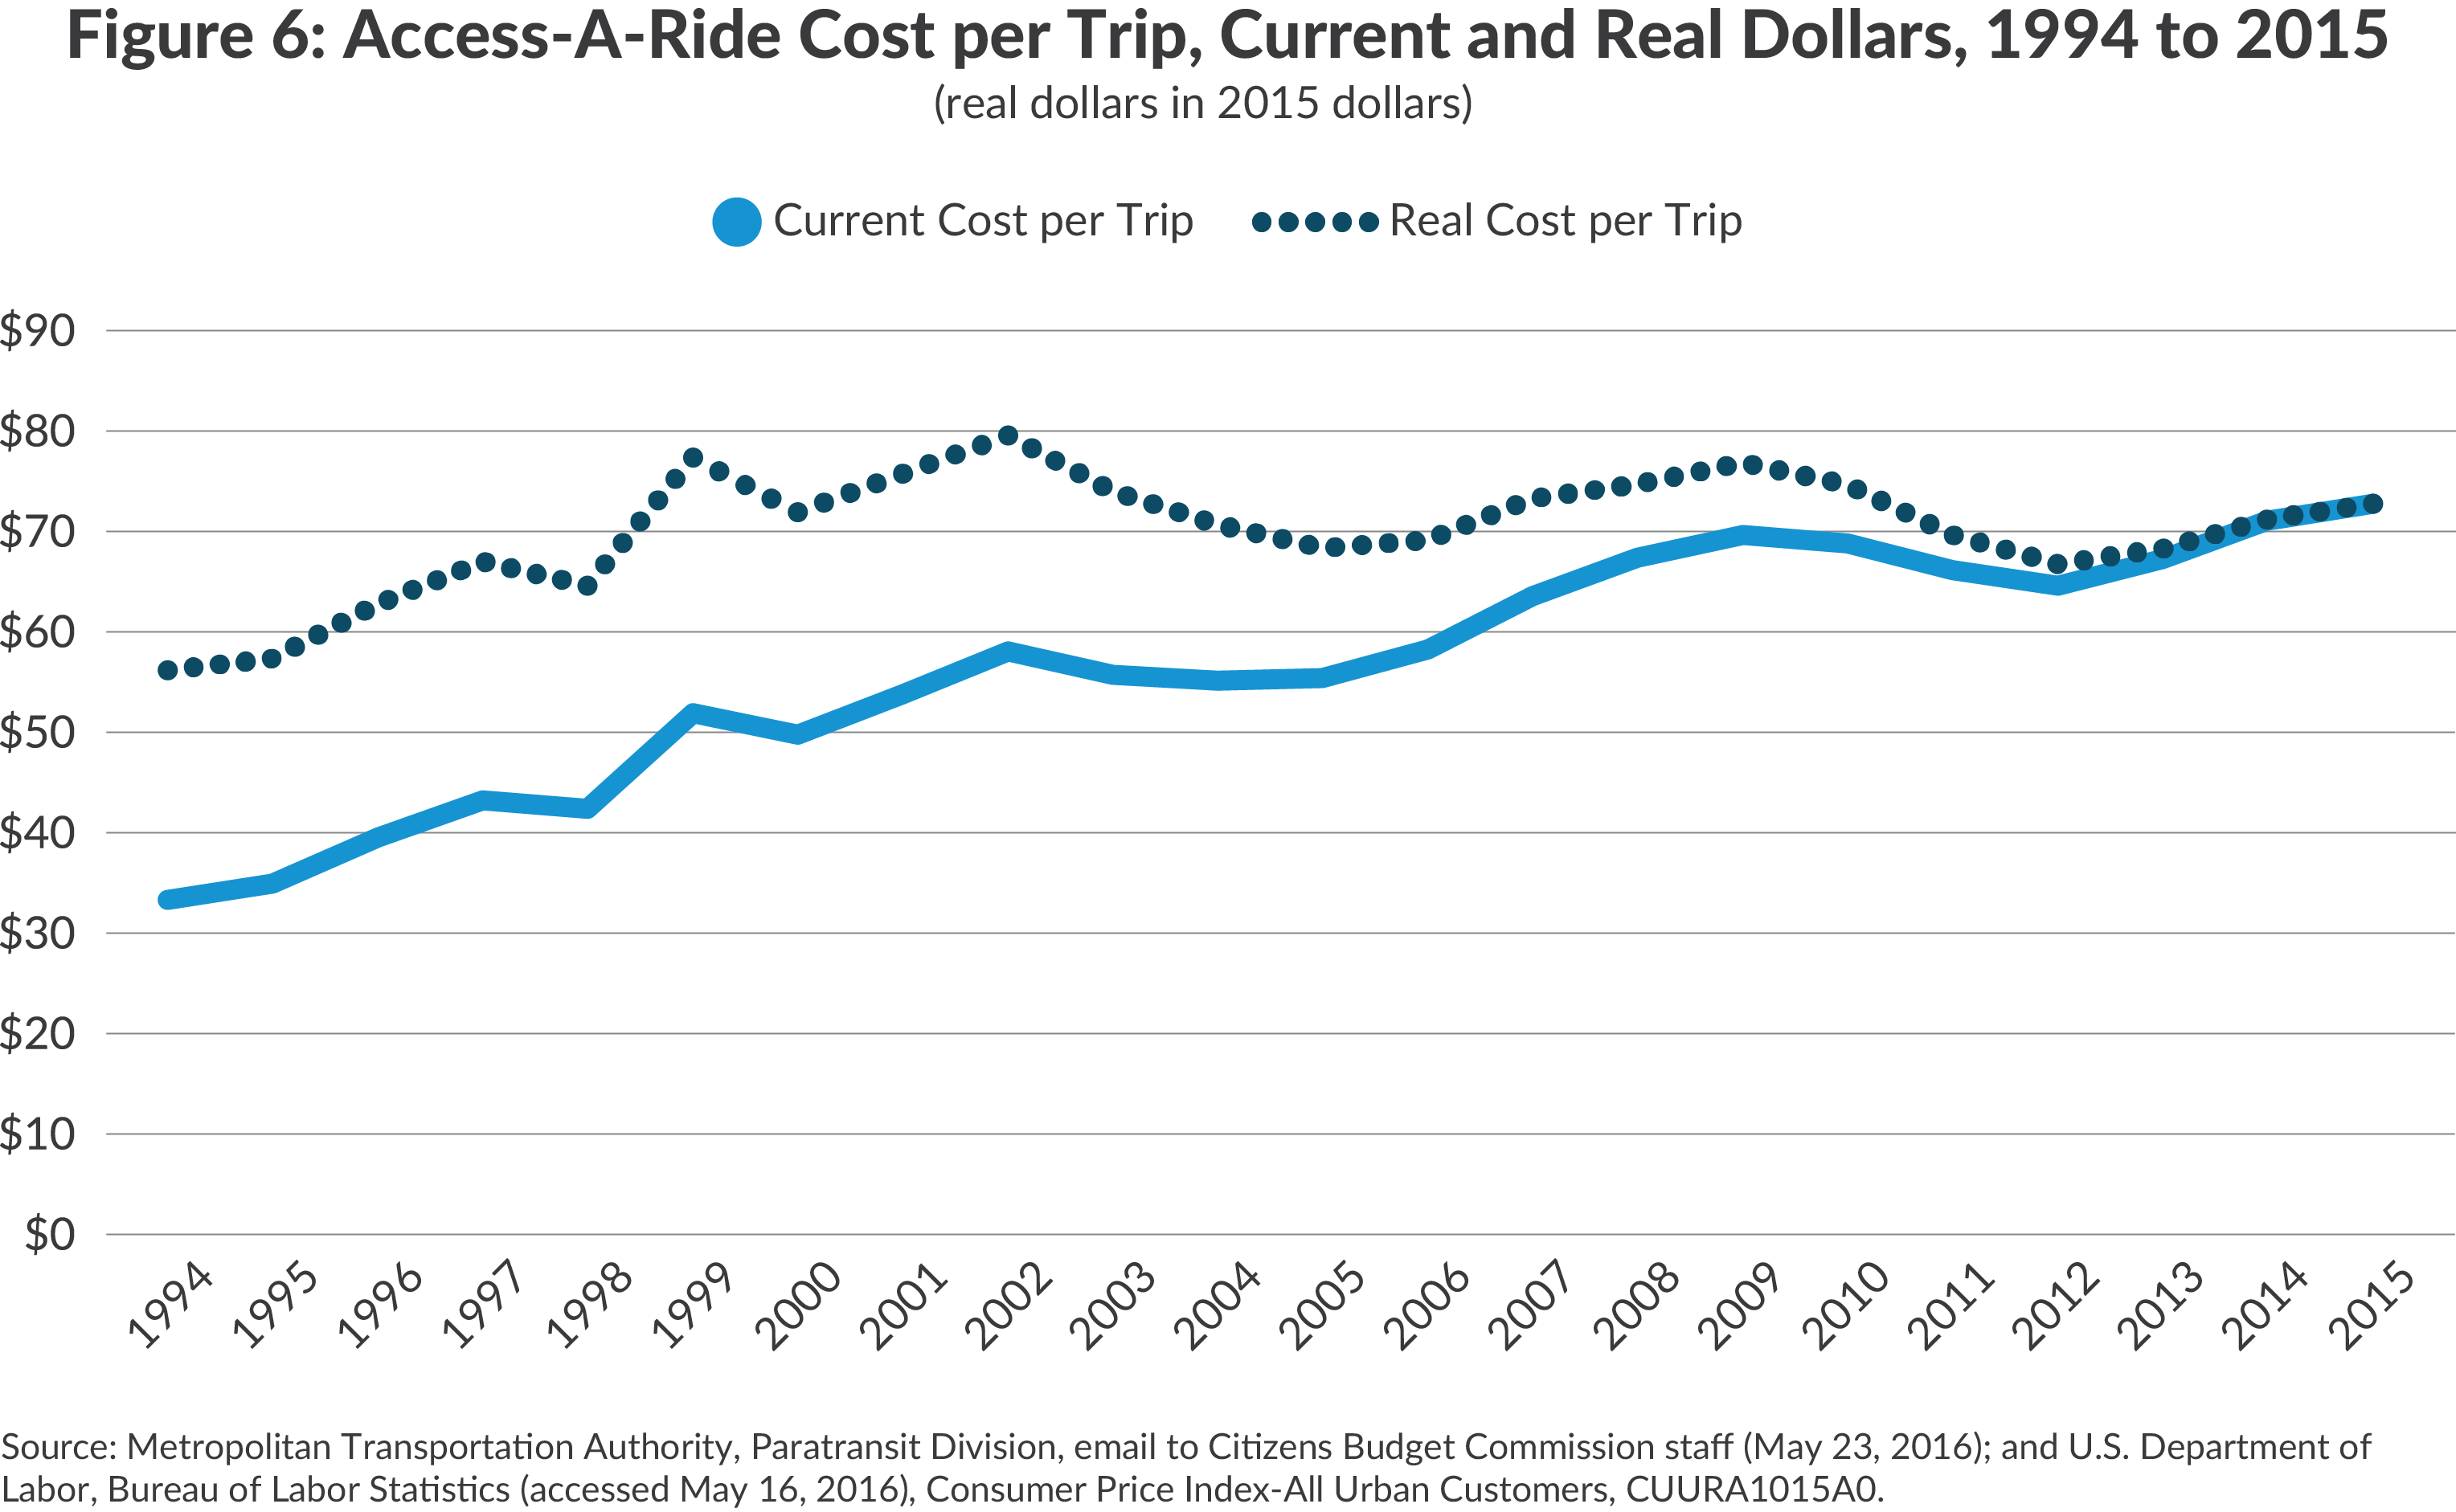 MTA Access-A-Ride paratransit program, cost per trip, 1994 to 2015